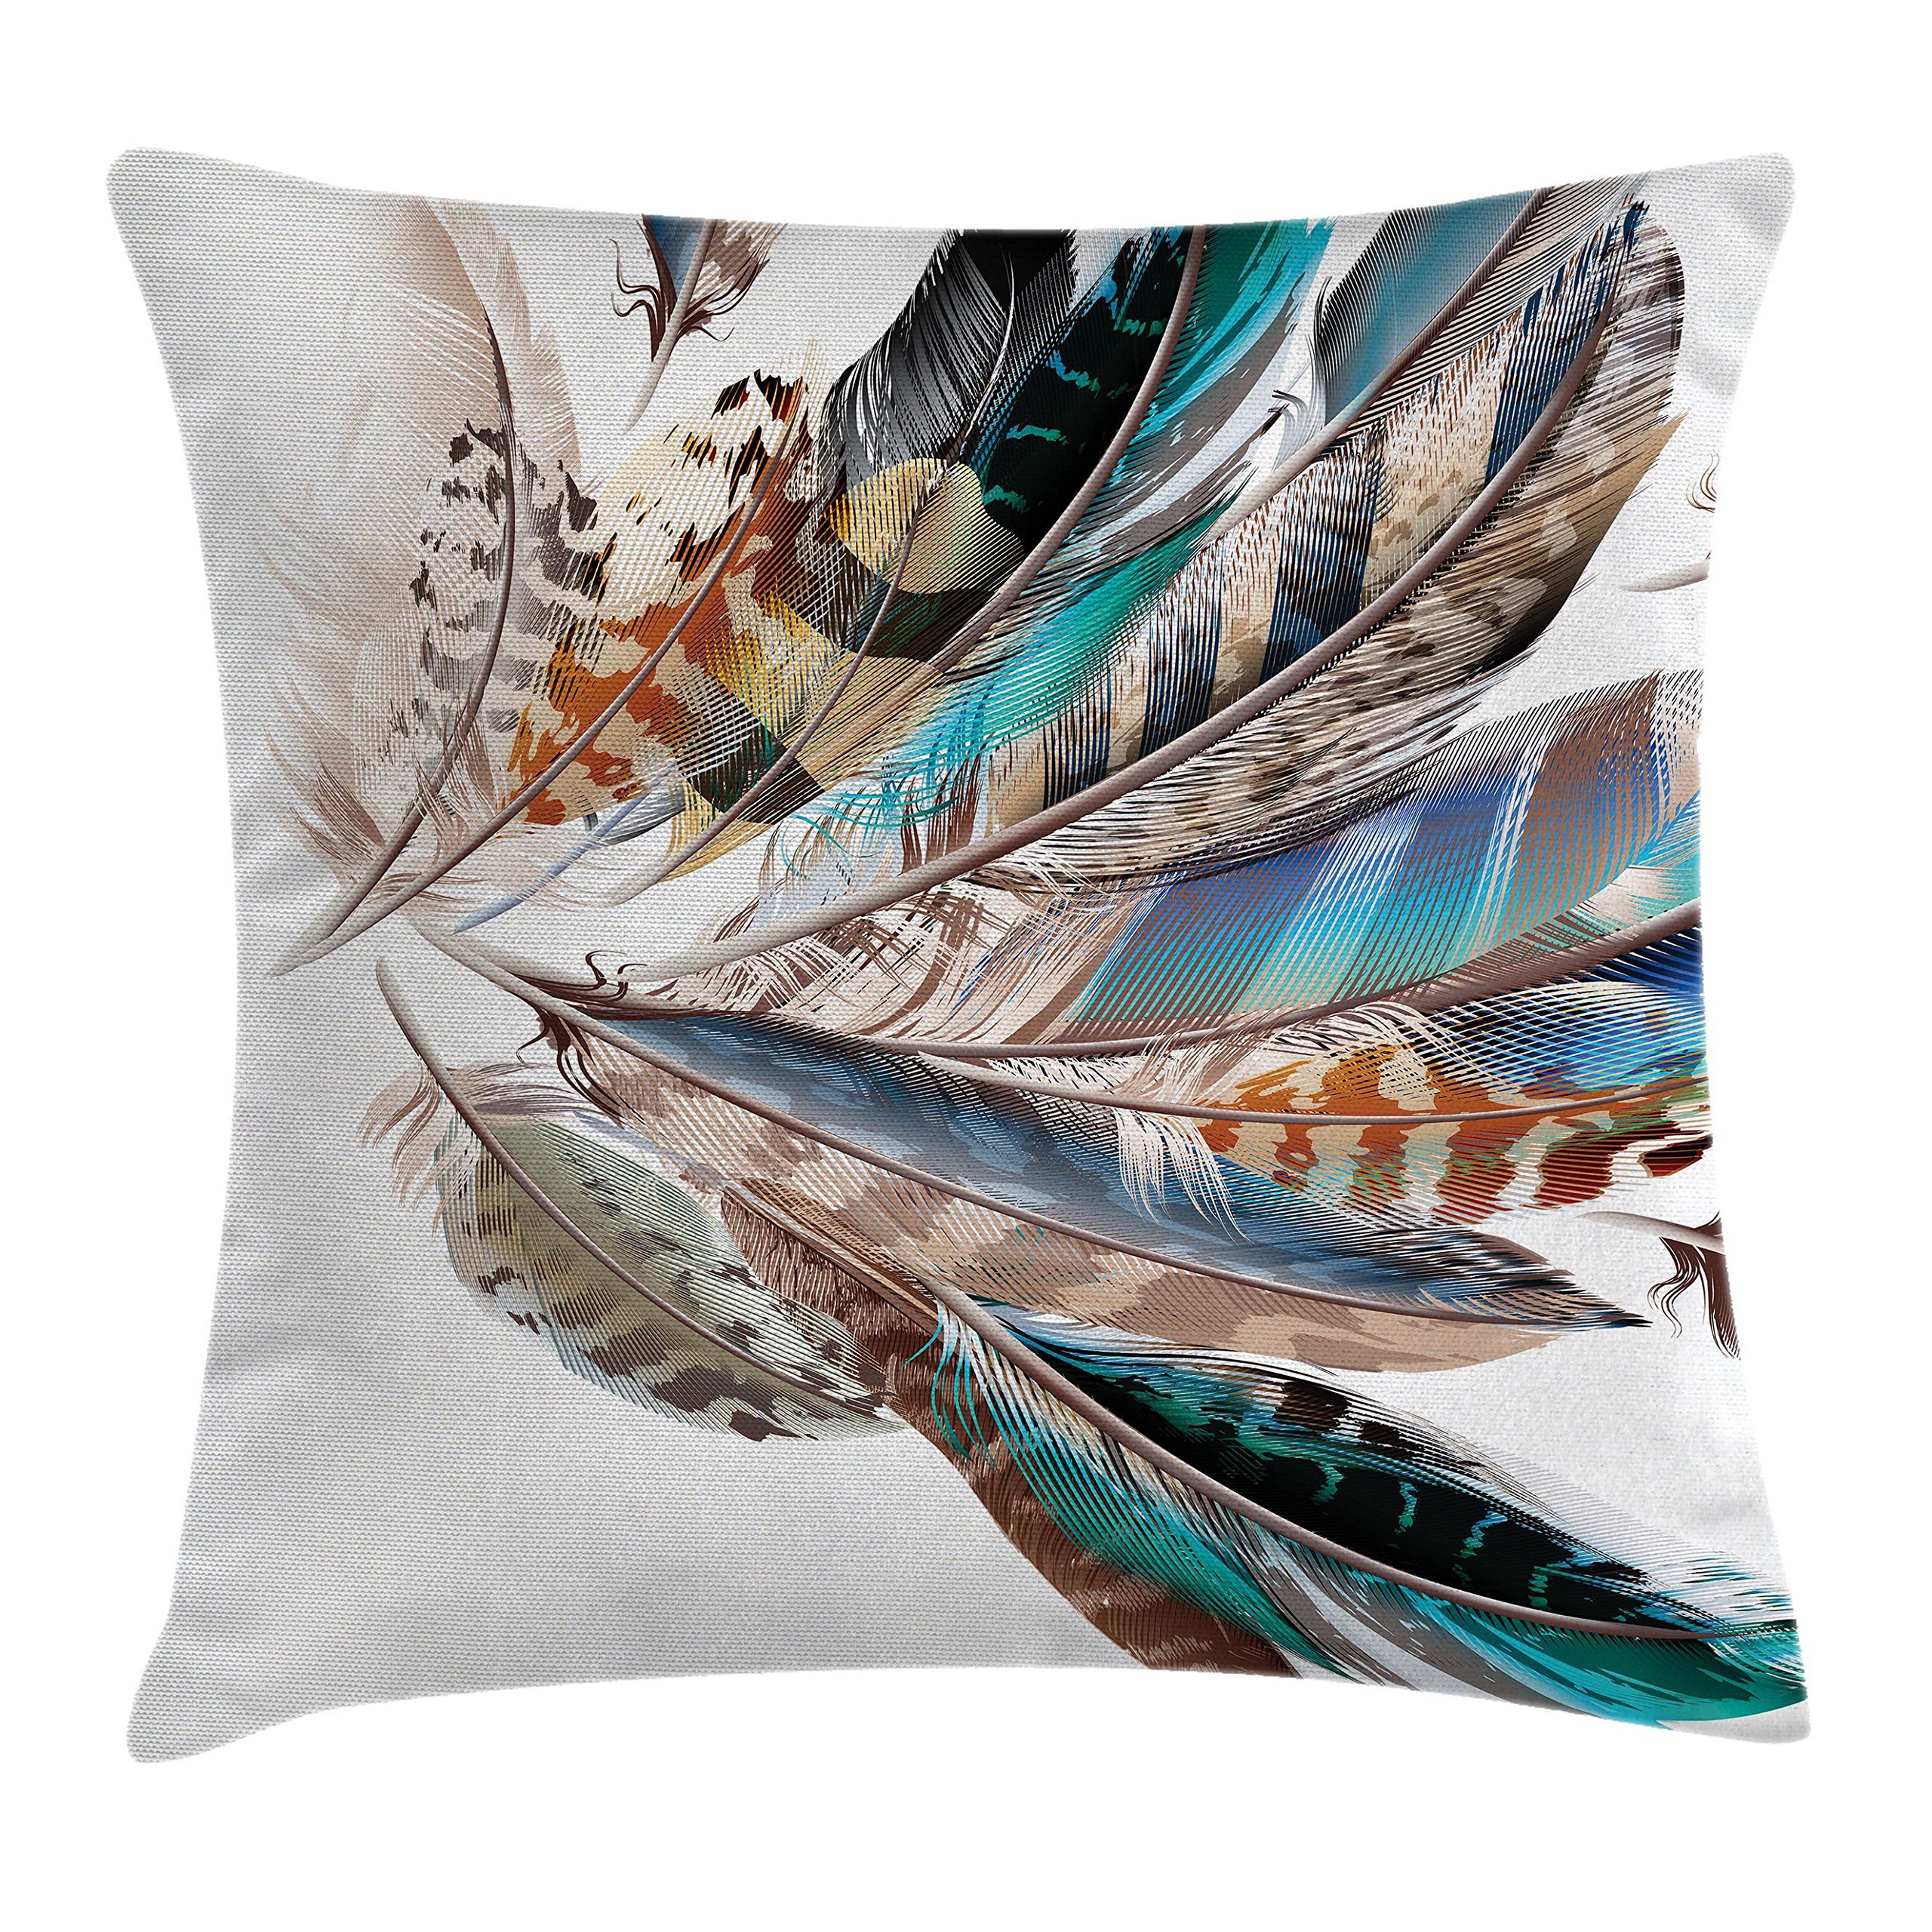 Ambesonne Feather House Decor Throw Pillow Cushion Cover, Vaned Types and Natal Contour Flight Feathers Animal Skin Element Print, Decorative Square Accent Pillow Case, 20 X 20 Inches, Teal Brown